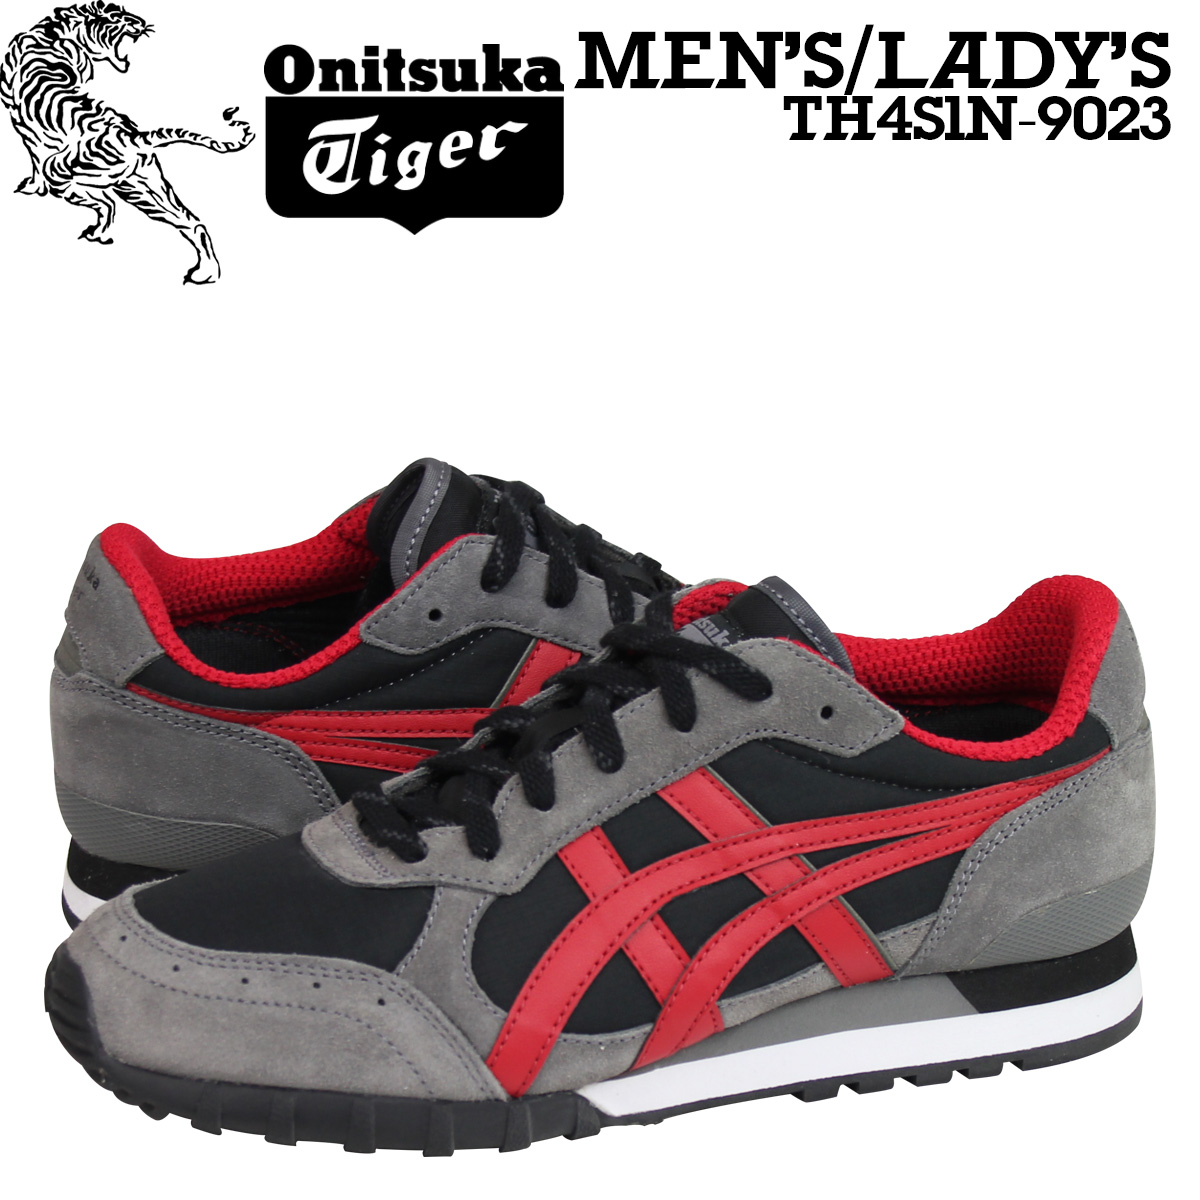 asics tiger onitsuka colorado